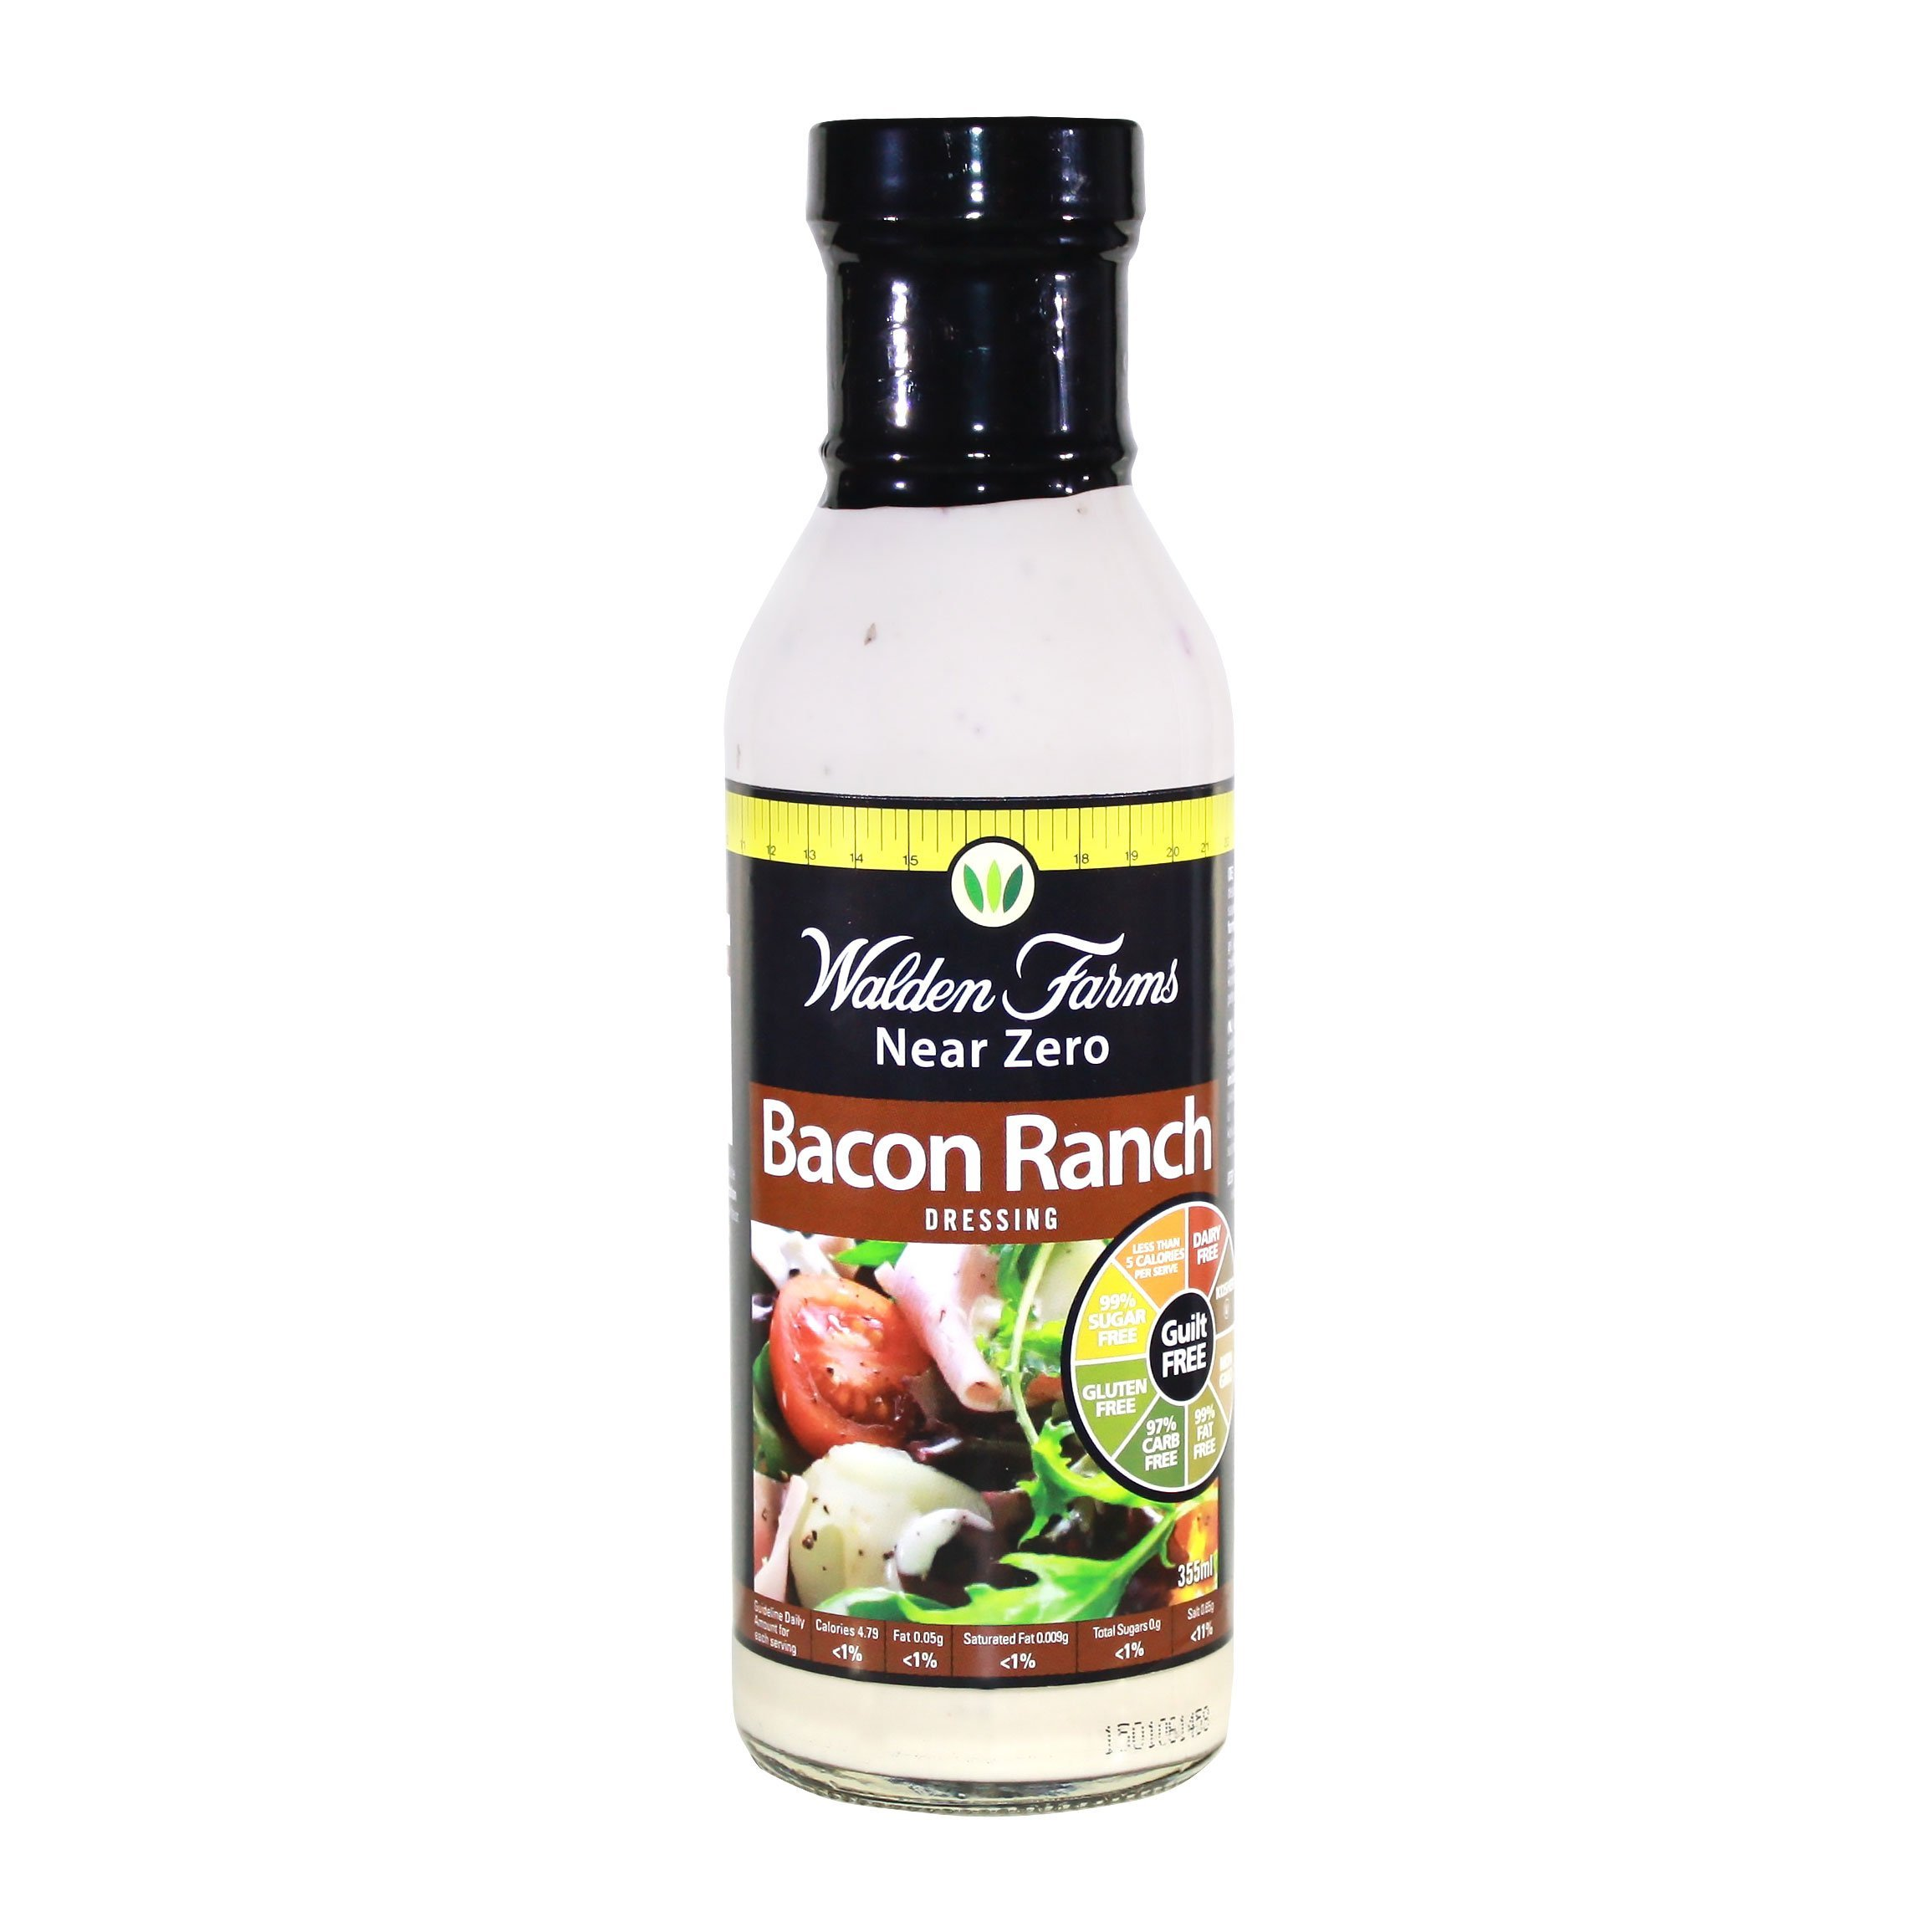 Walden Farms Bacon Ranch Dressing-12 oz 2 Pack by Walden Farms